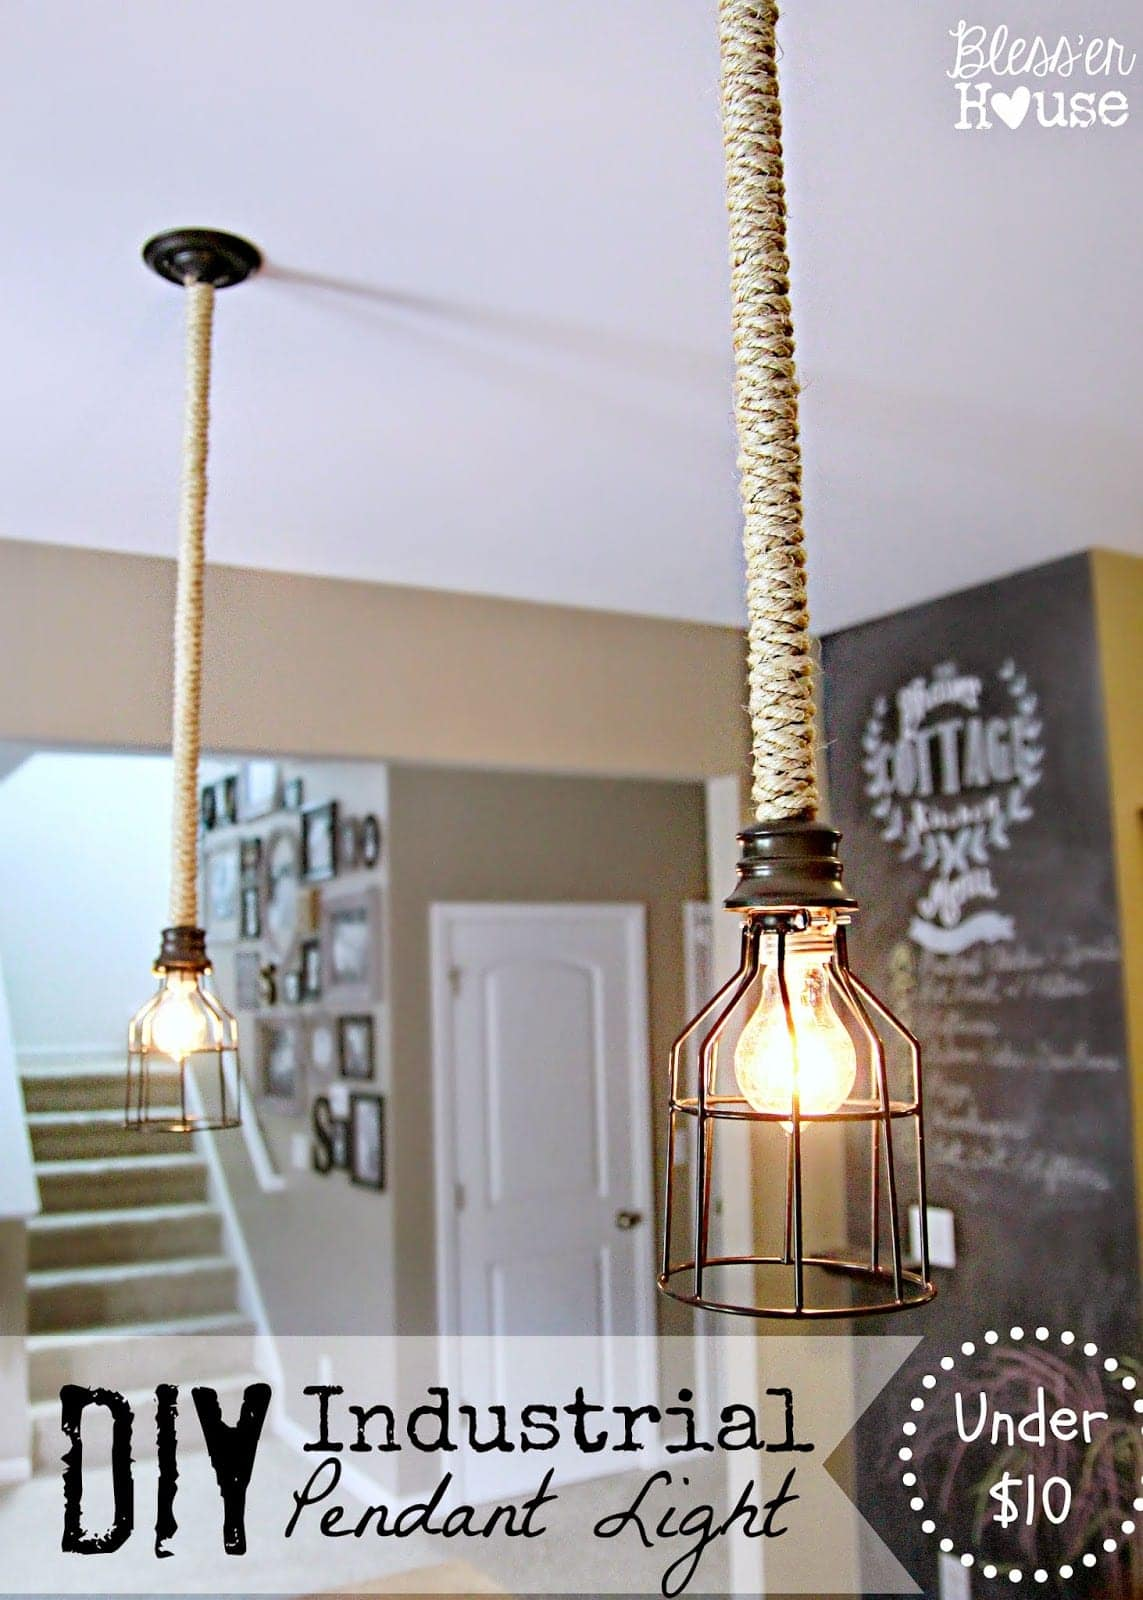 Diy industrial pendant light for under 10 blesser house aloadofball Gallery